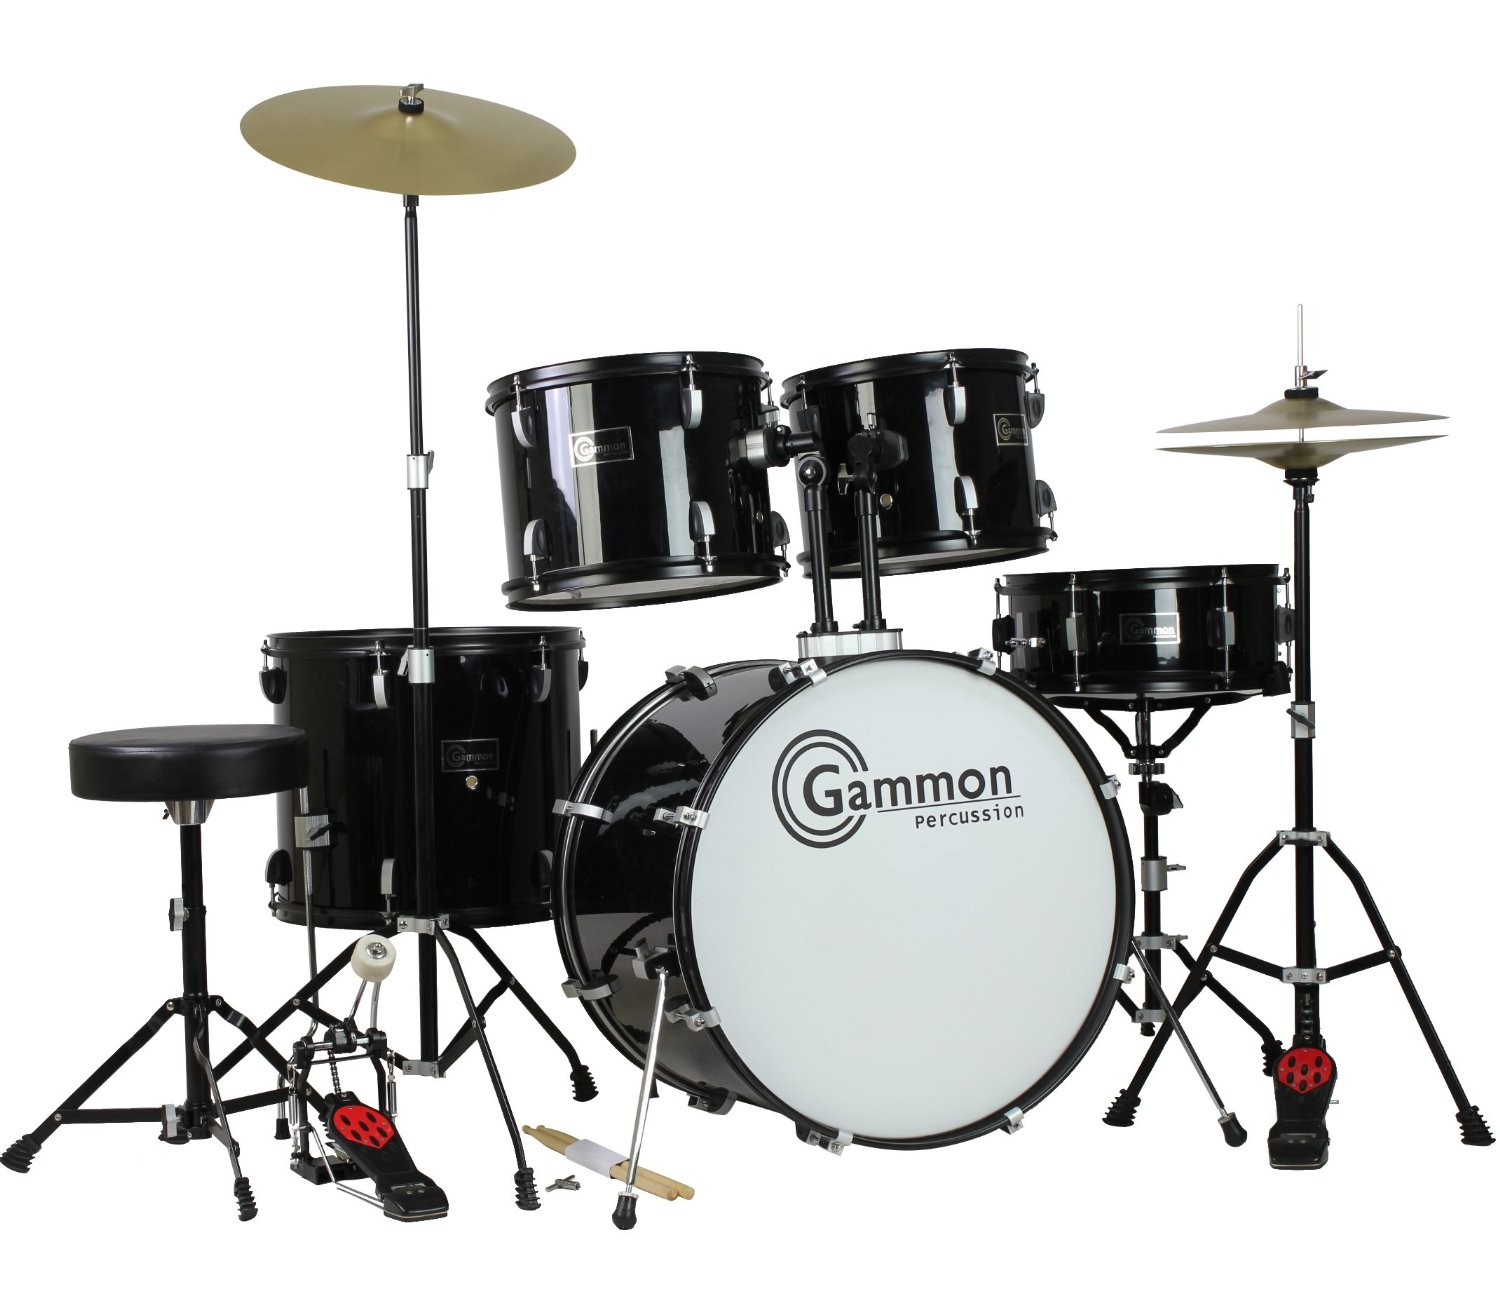 Top 10 Best Drum Sets For Beginners And Professionals In